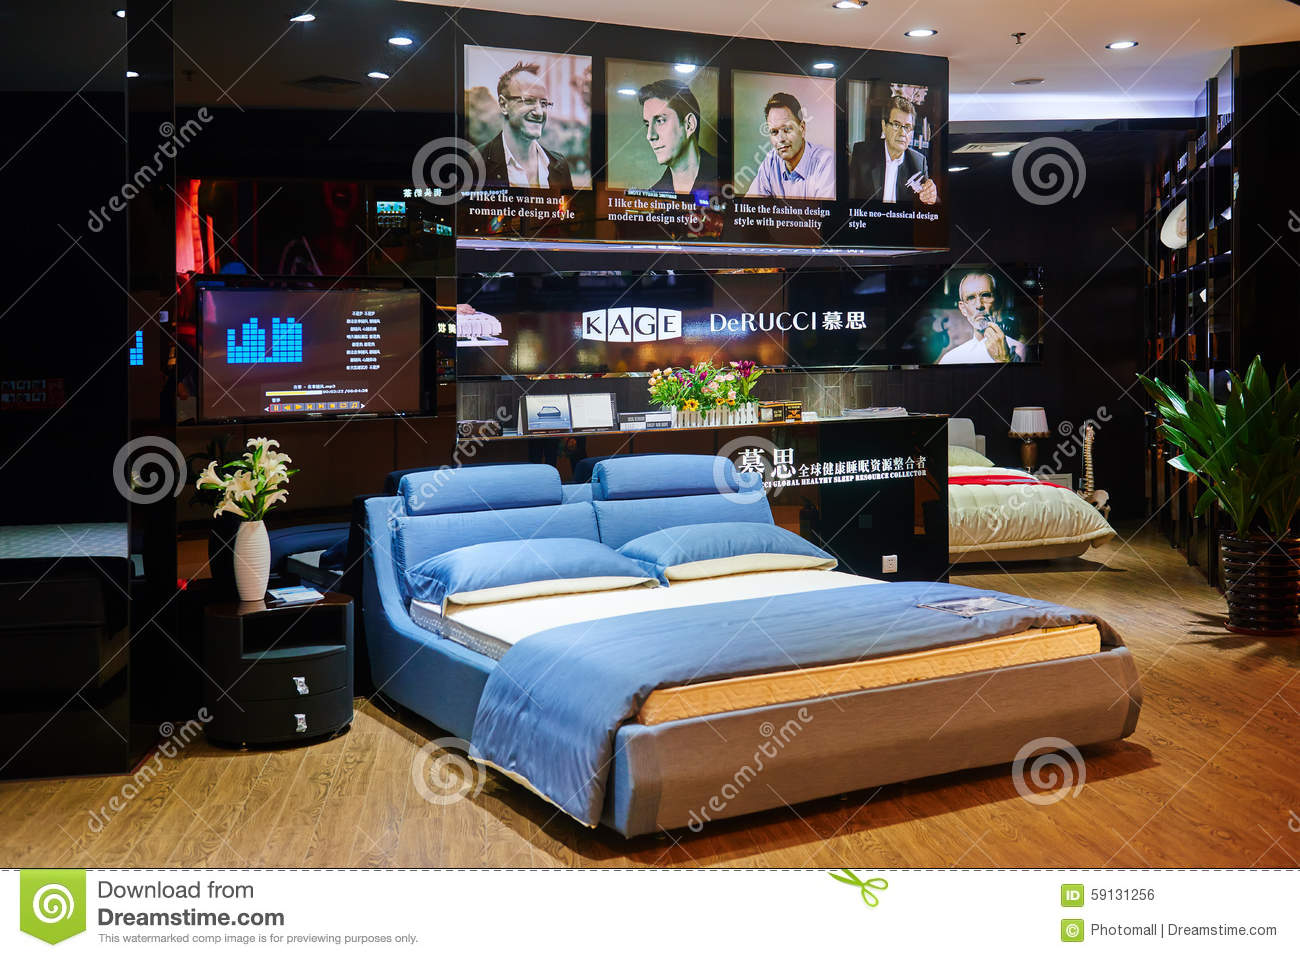 Bed mattress shop trendy bedroom editorial photo image 59131256 Home furniture and mattress